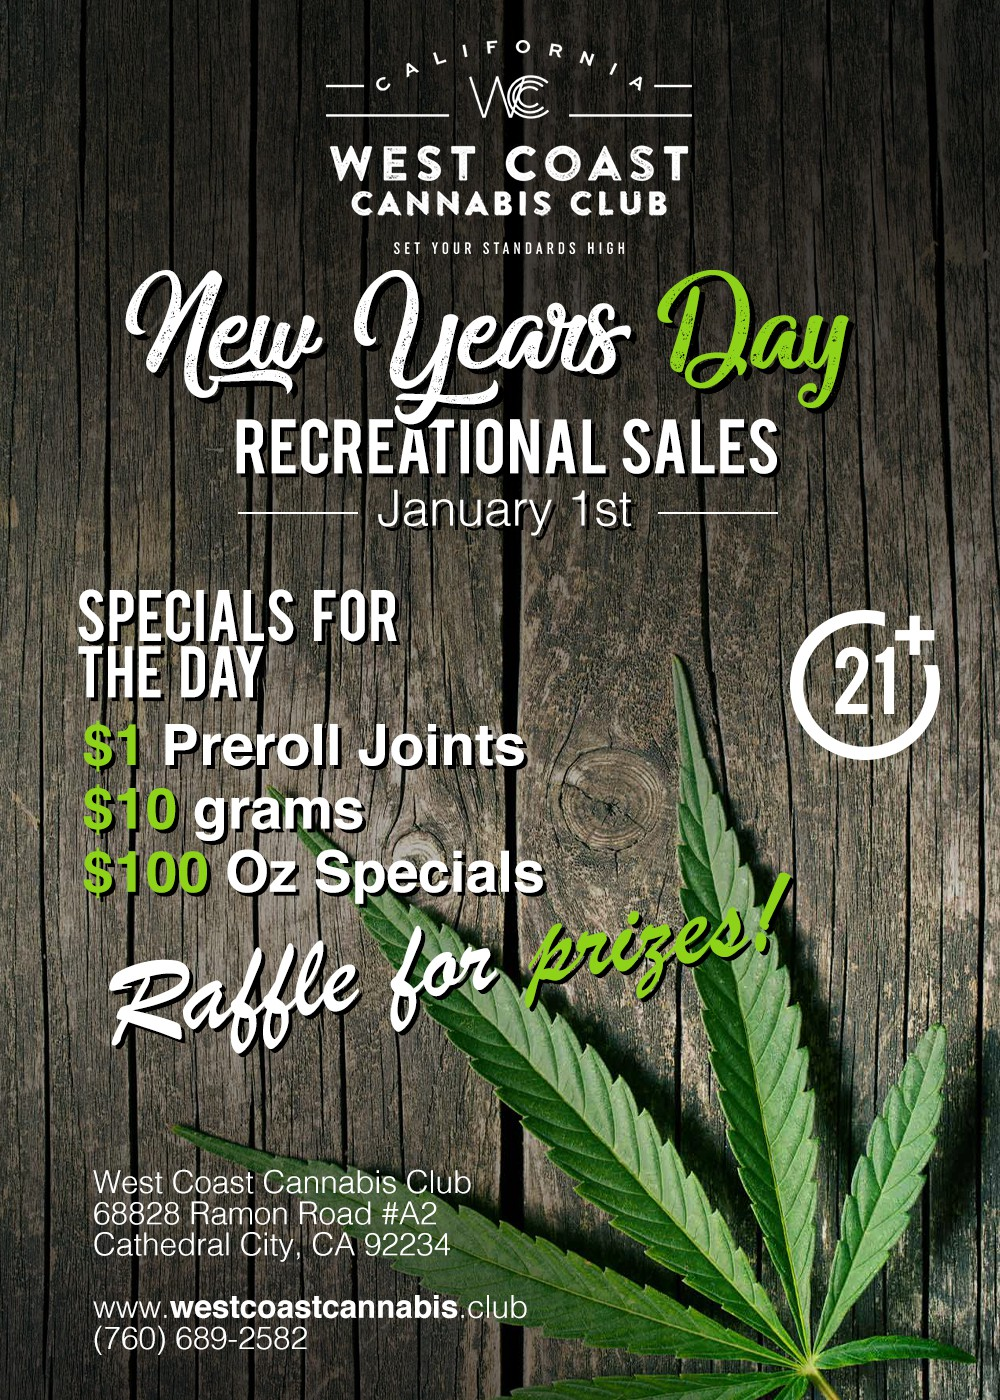 FLYER for a Cannabis Dispensary who begins recreational sales on New Years Day!